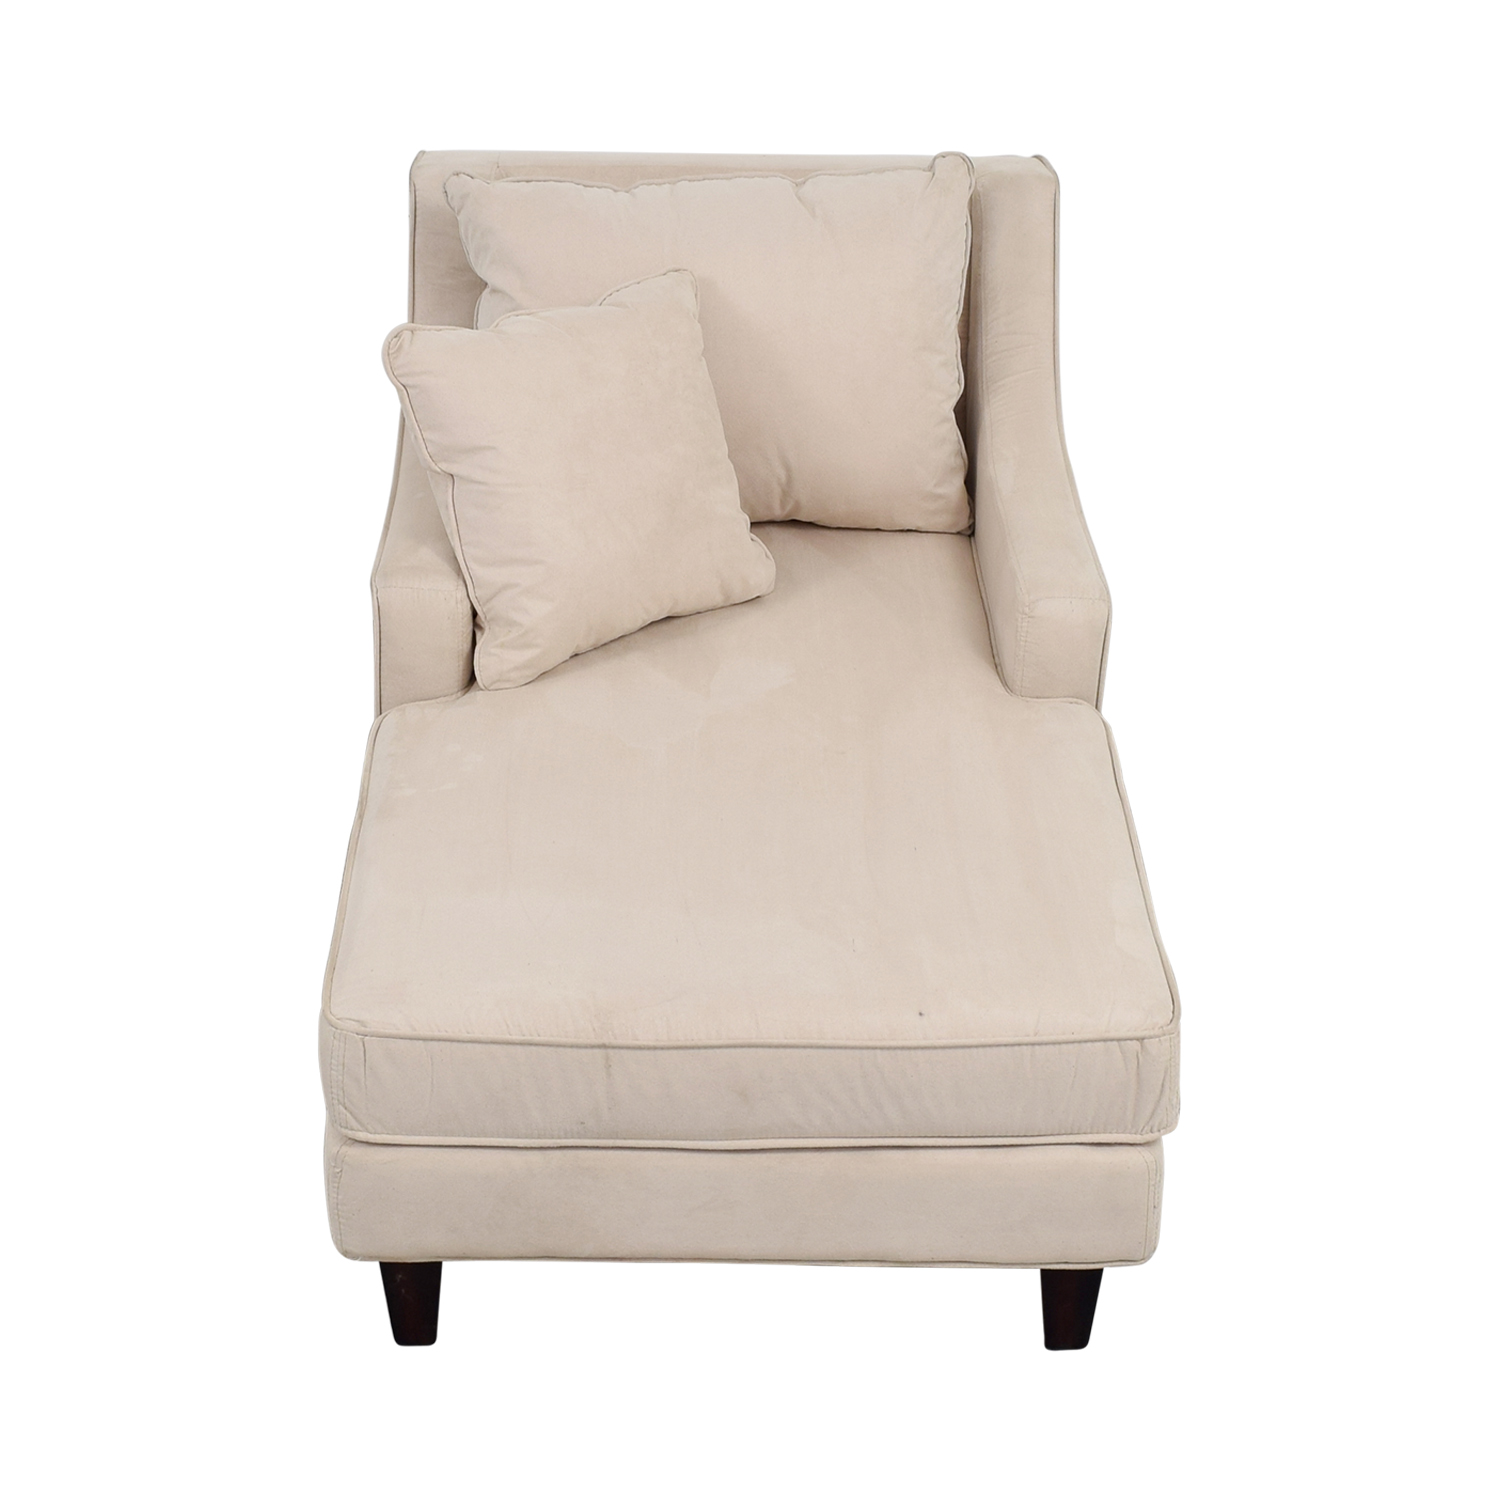 Coaster Coaster Beige Microfiber Chaise Lounger for sale